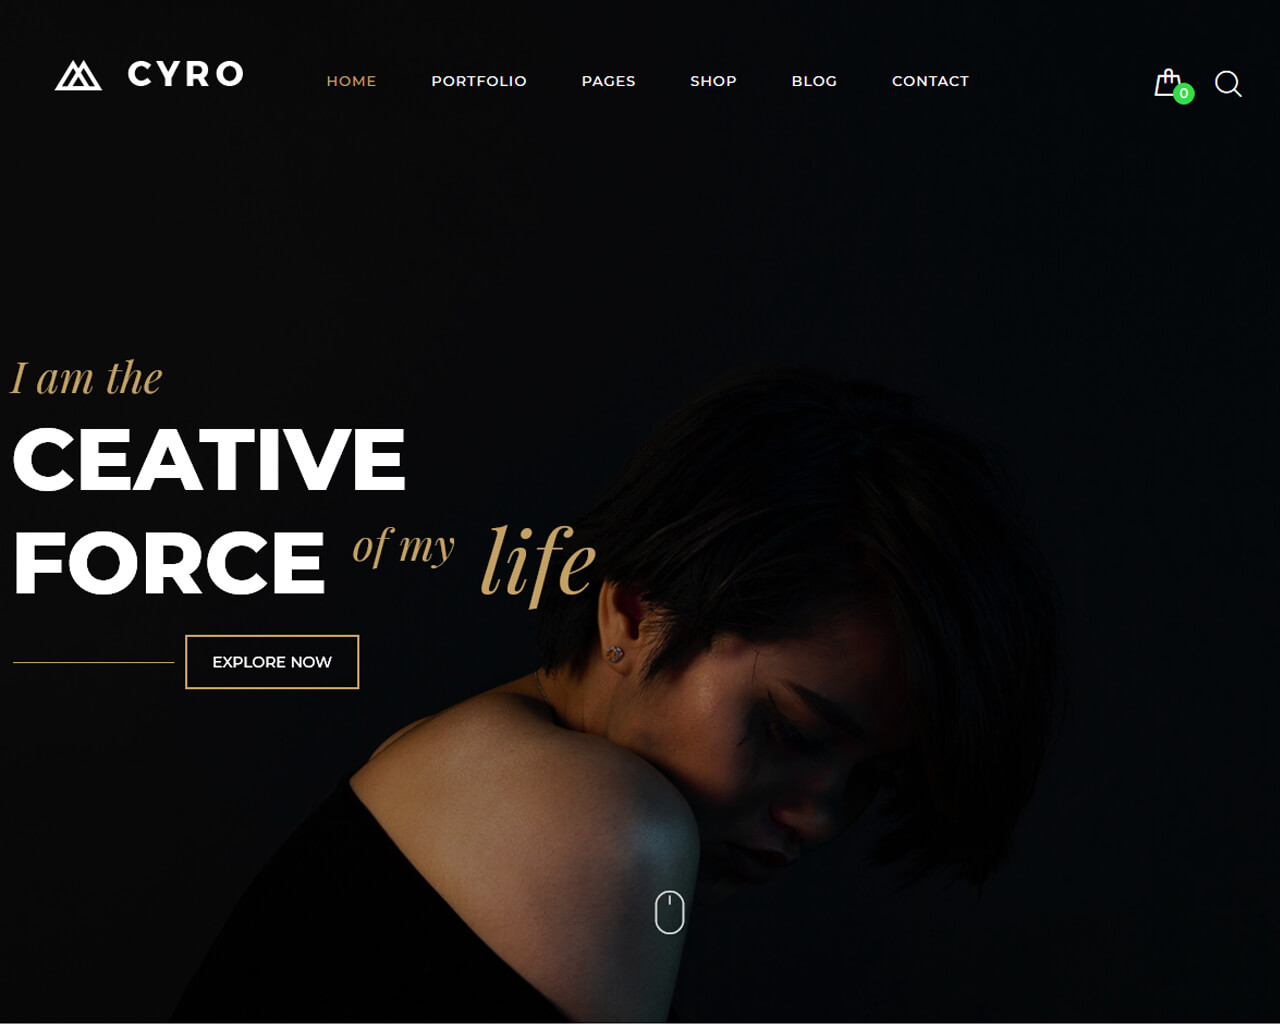 Cyro Website Template